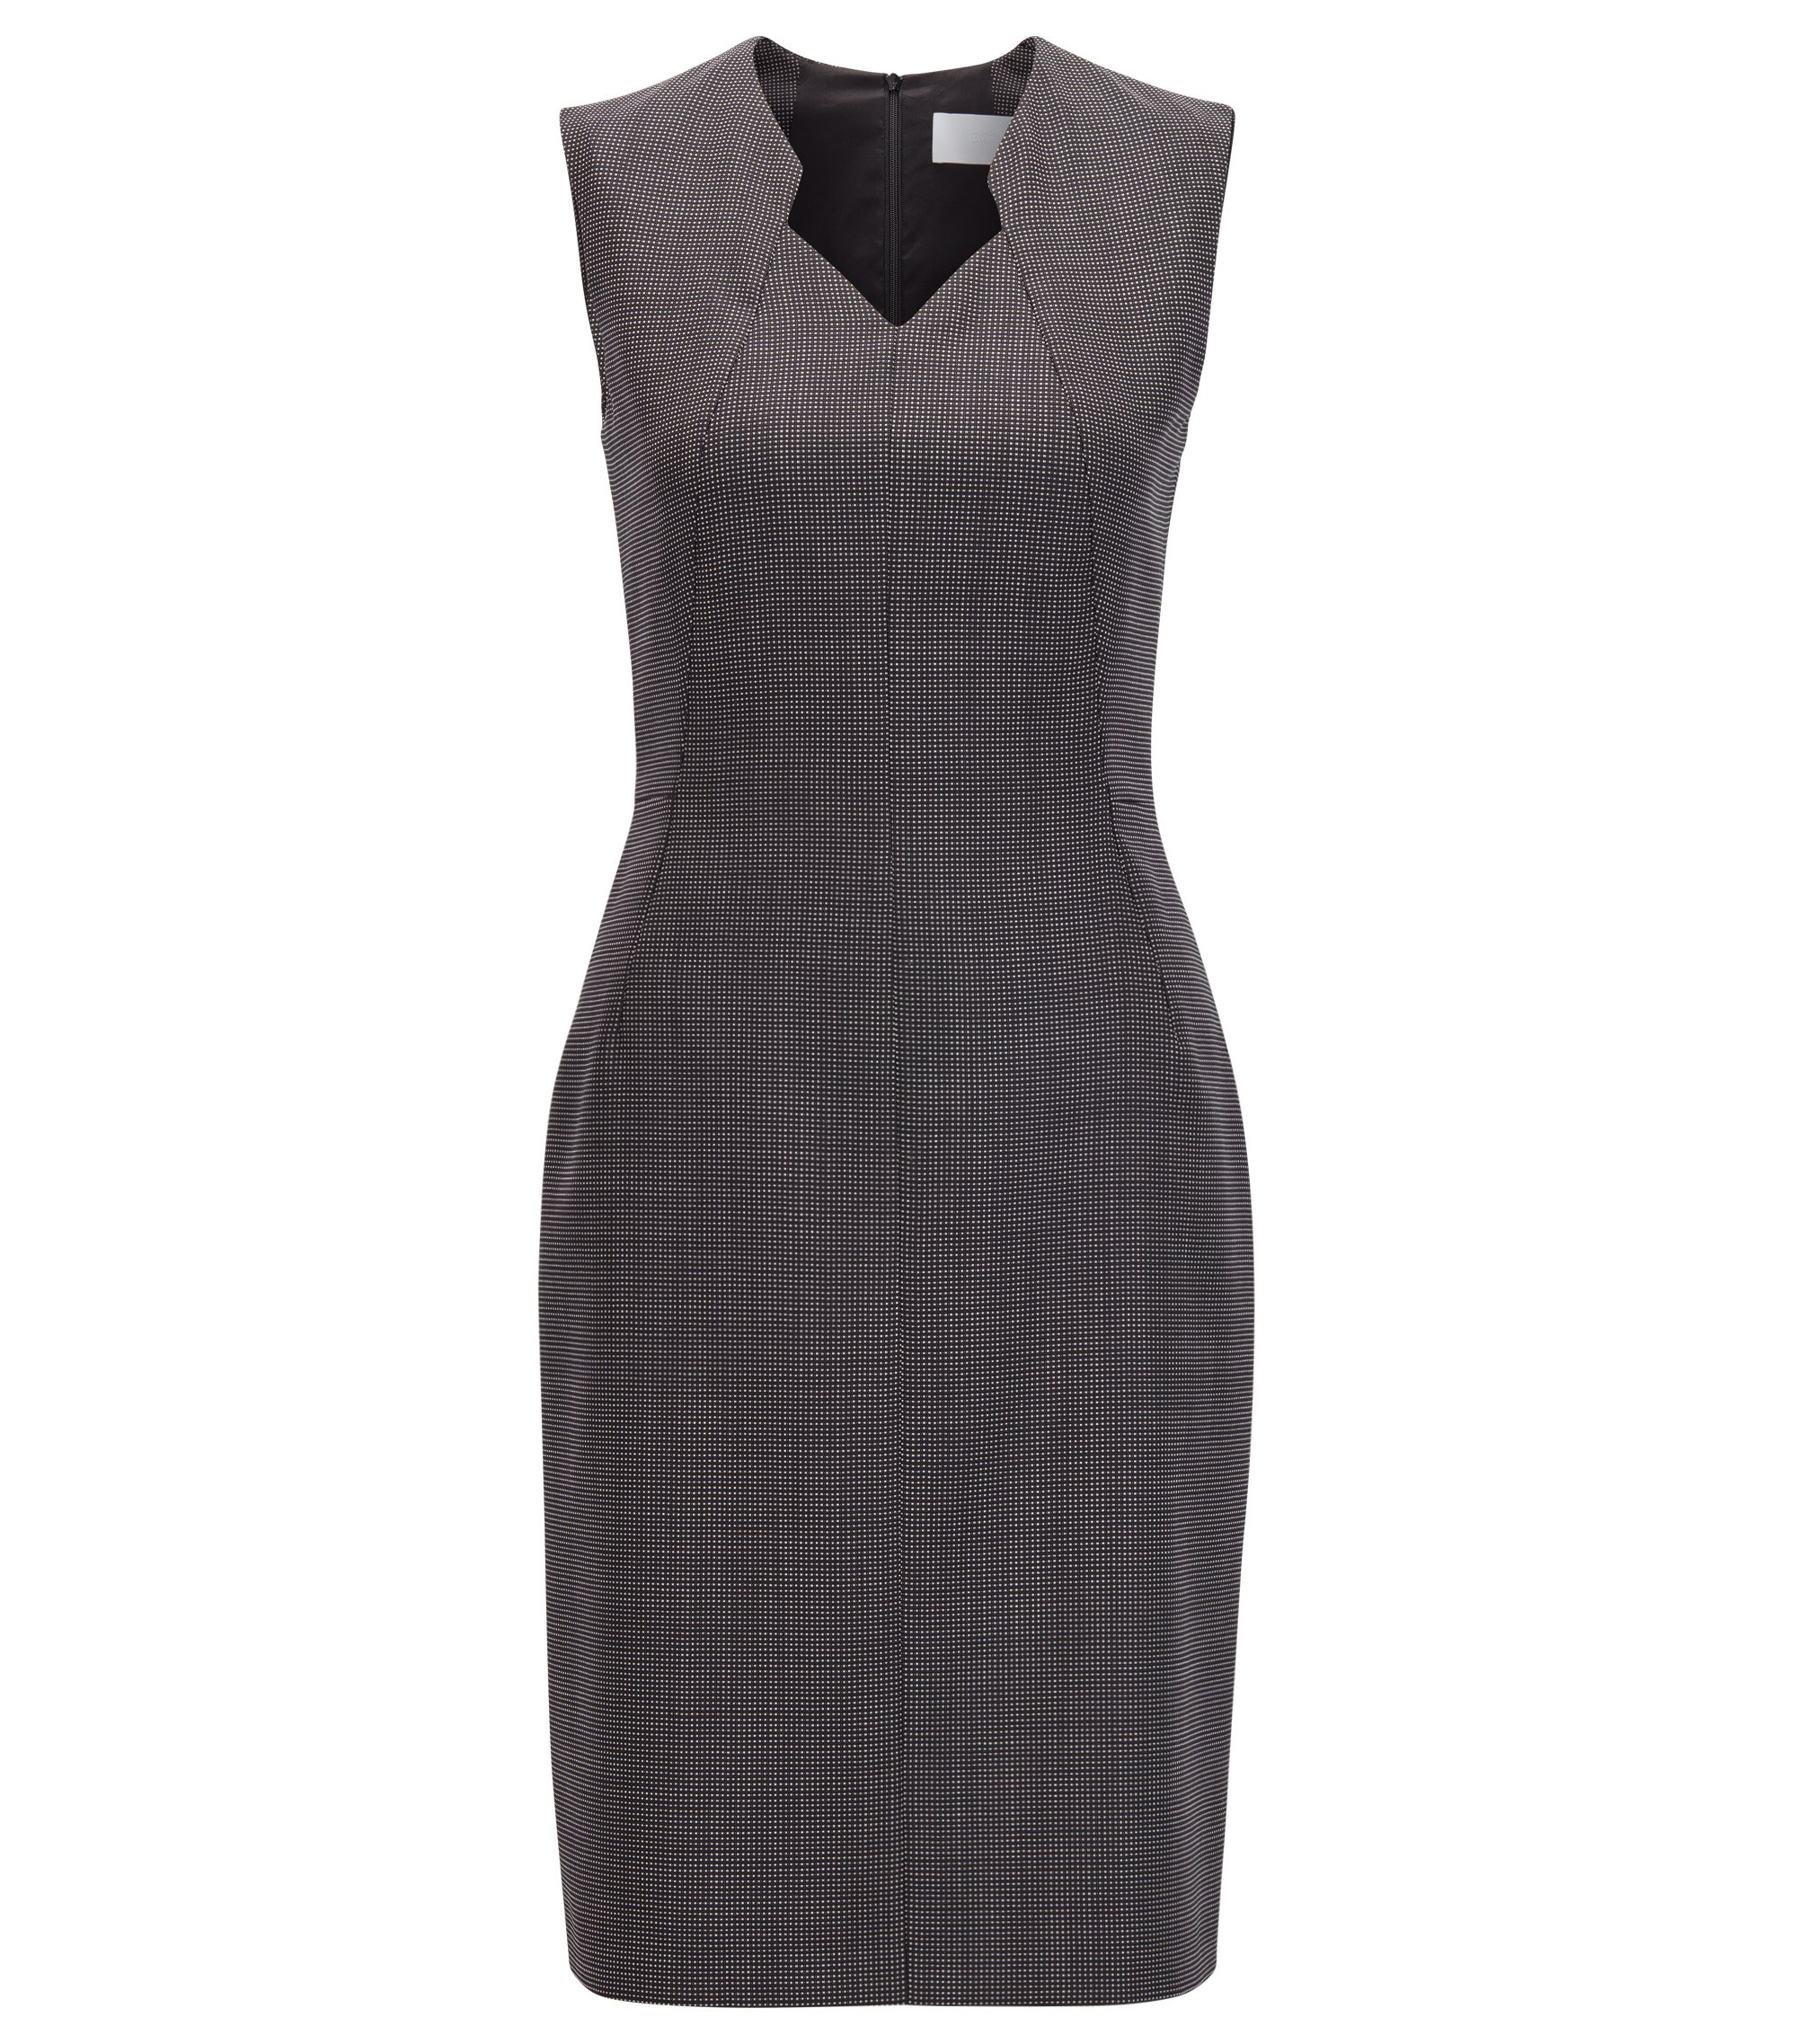 Stretch Wool Sheath Dress | Dokysa, Patterned